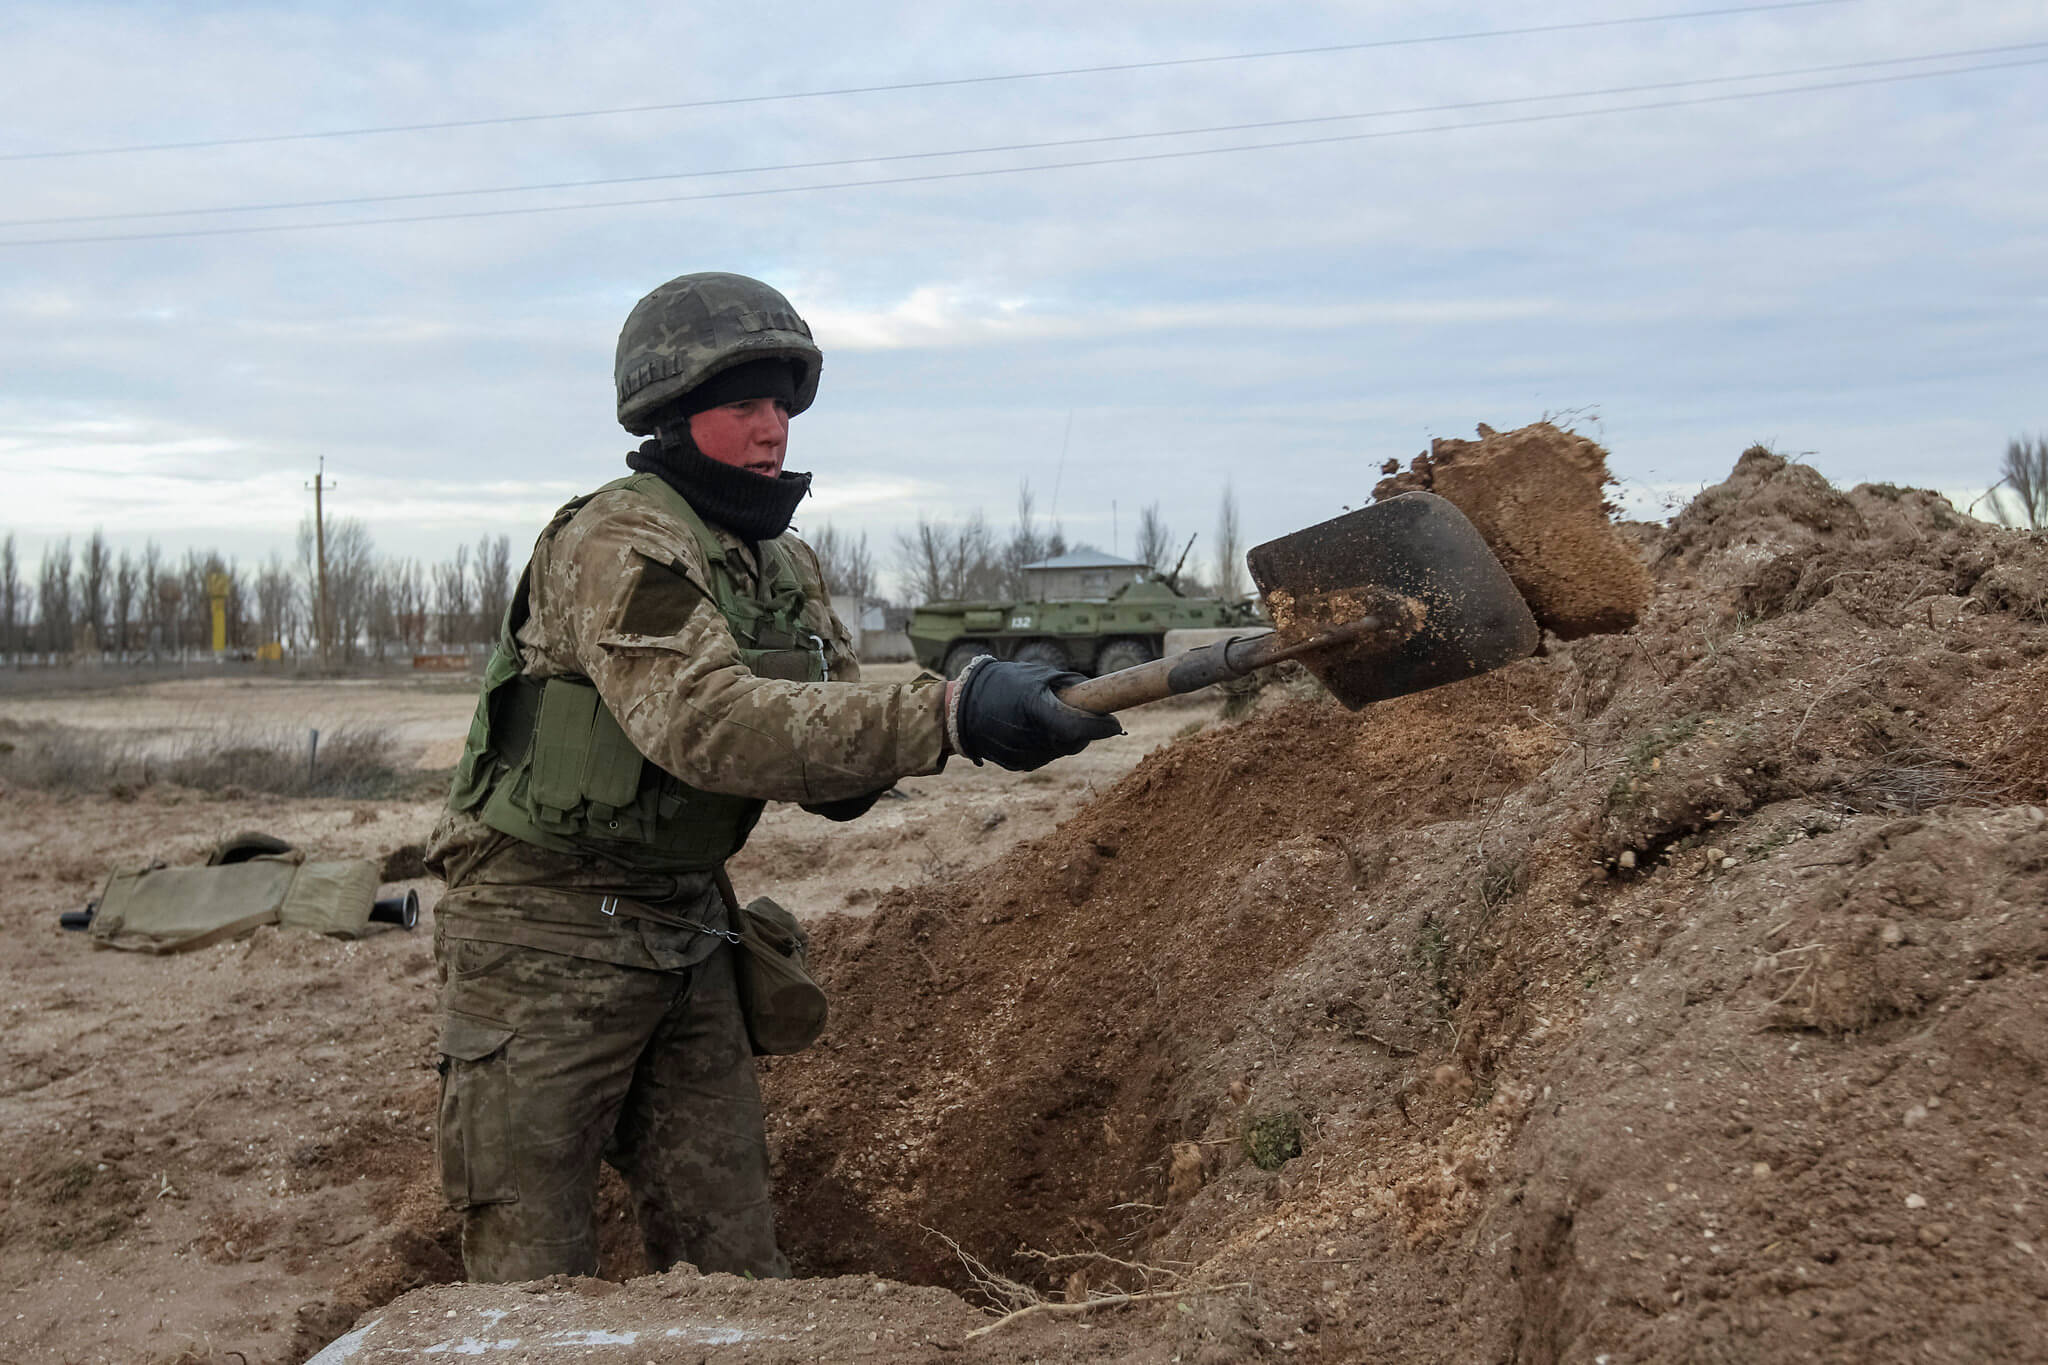 Ukrainian soldier digging a trench near a checkpoint in Crimea, 2014. © Flickr / Think Defense